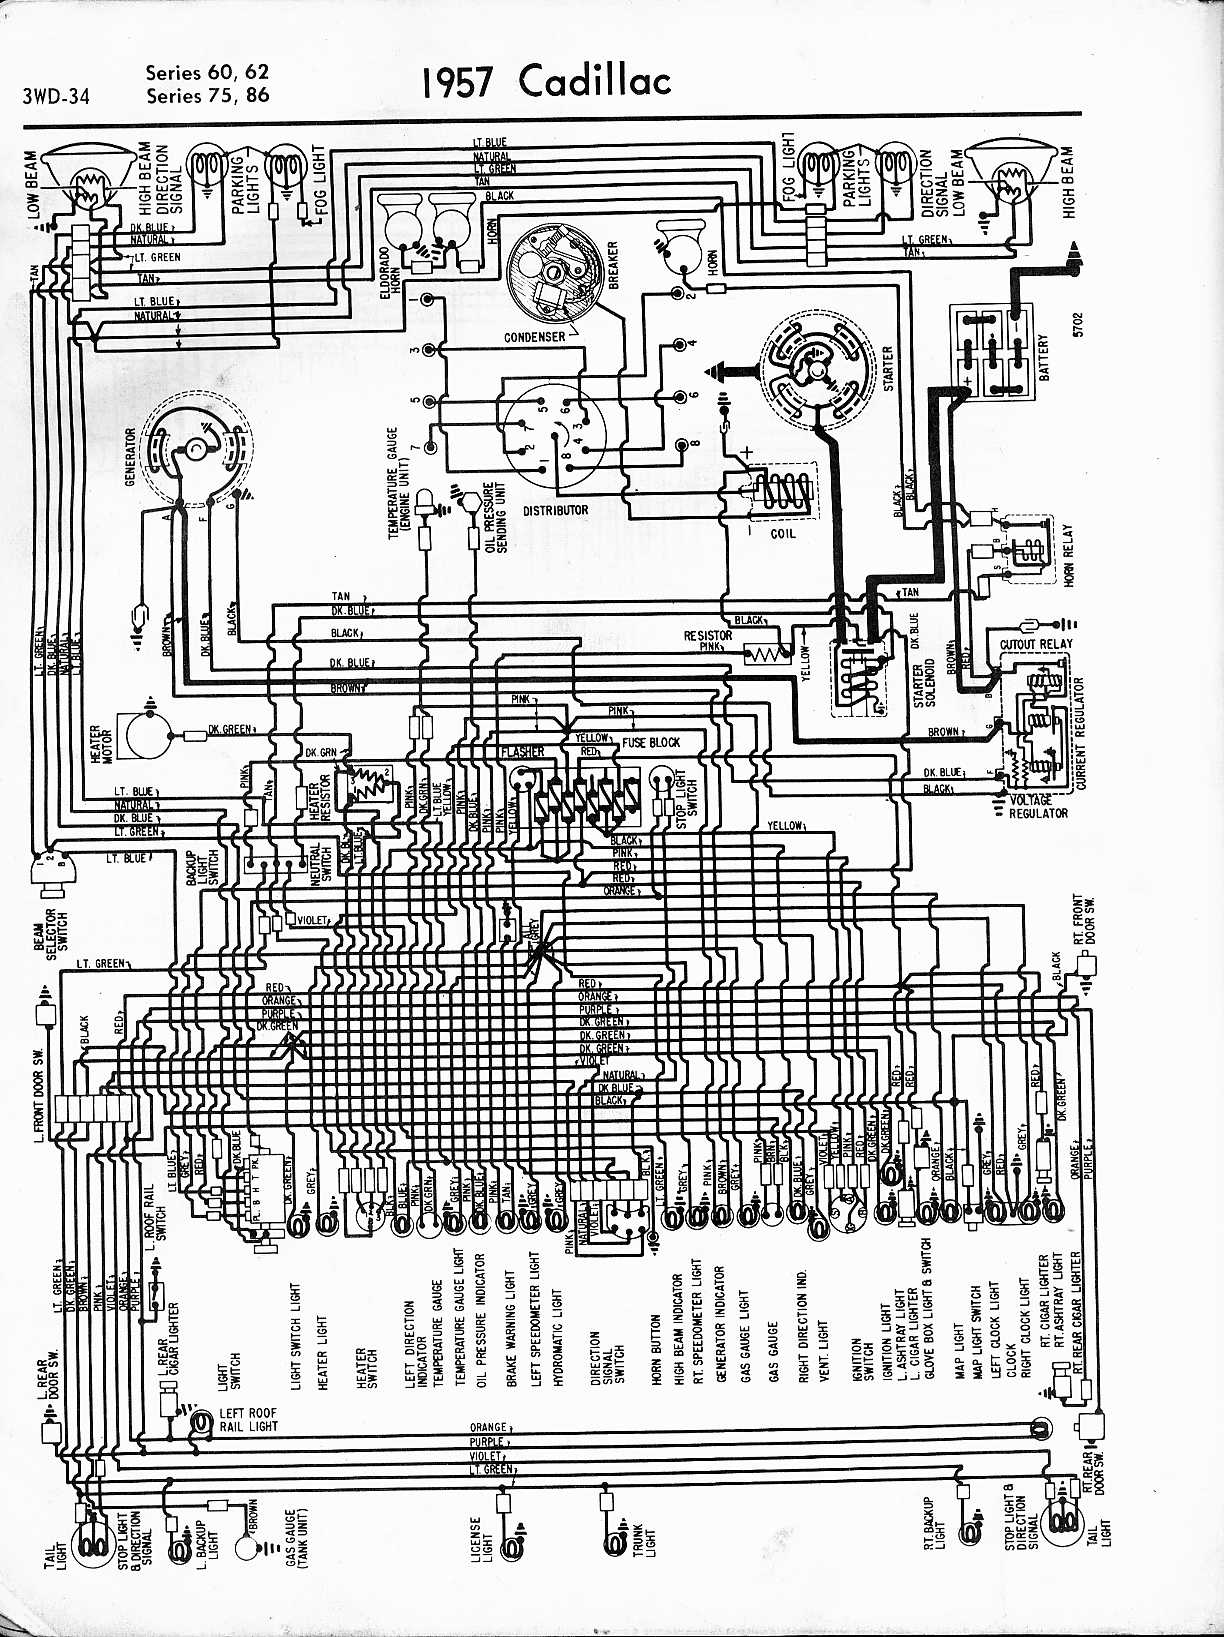 MWireCadi65_3WD 034 cadillac wiring diagrams 1957 1965 70 Cadillac Eldorado at bakdesigns.co